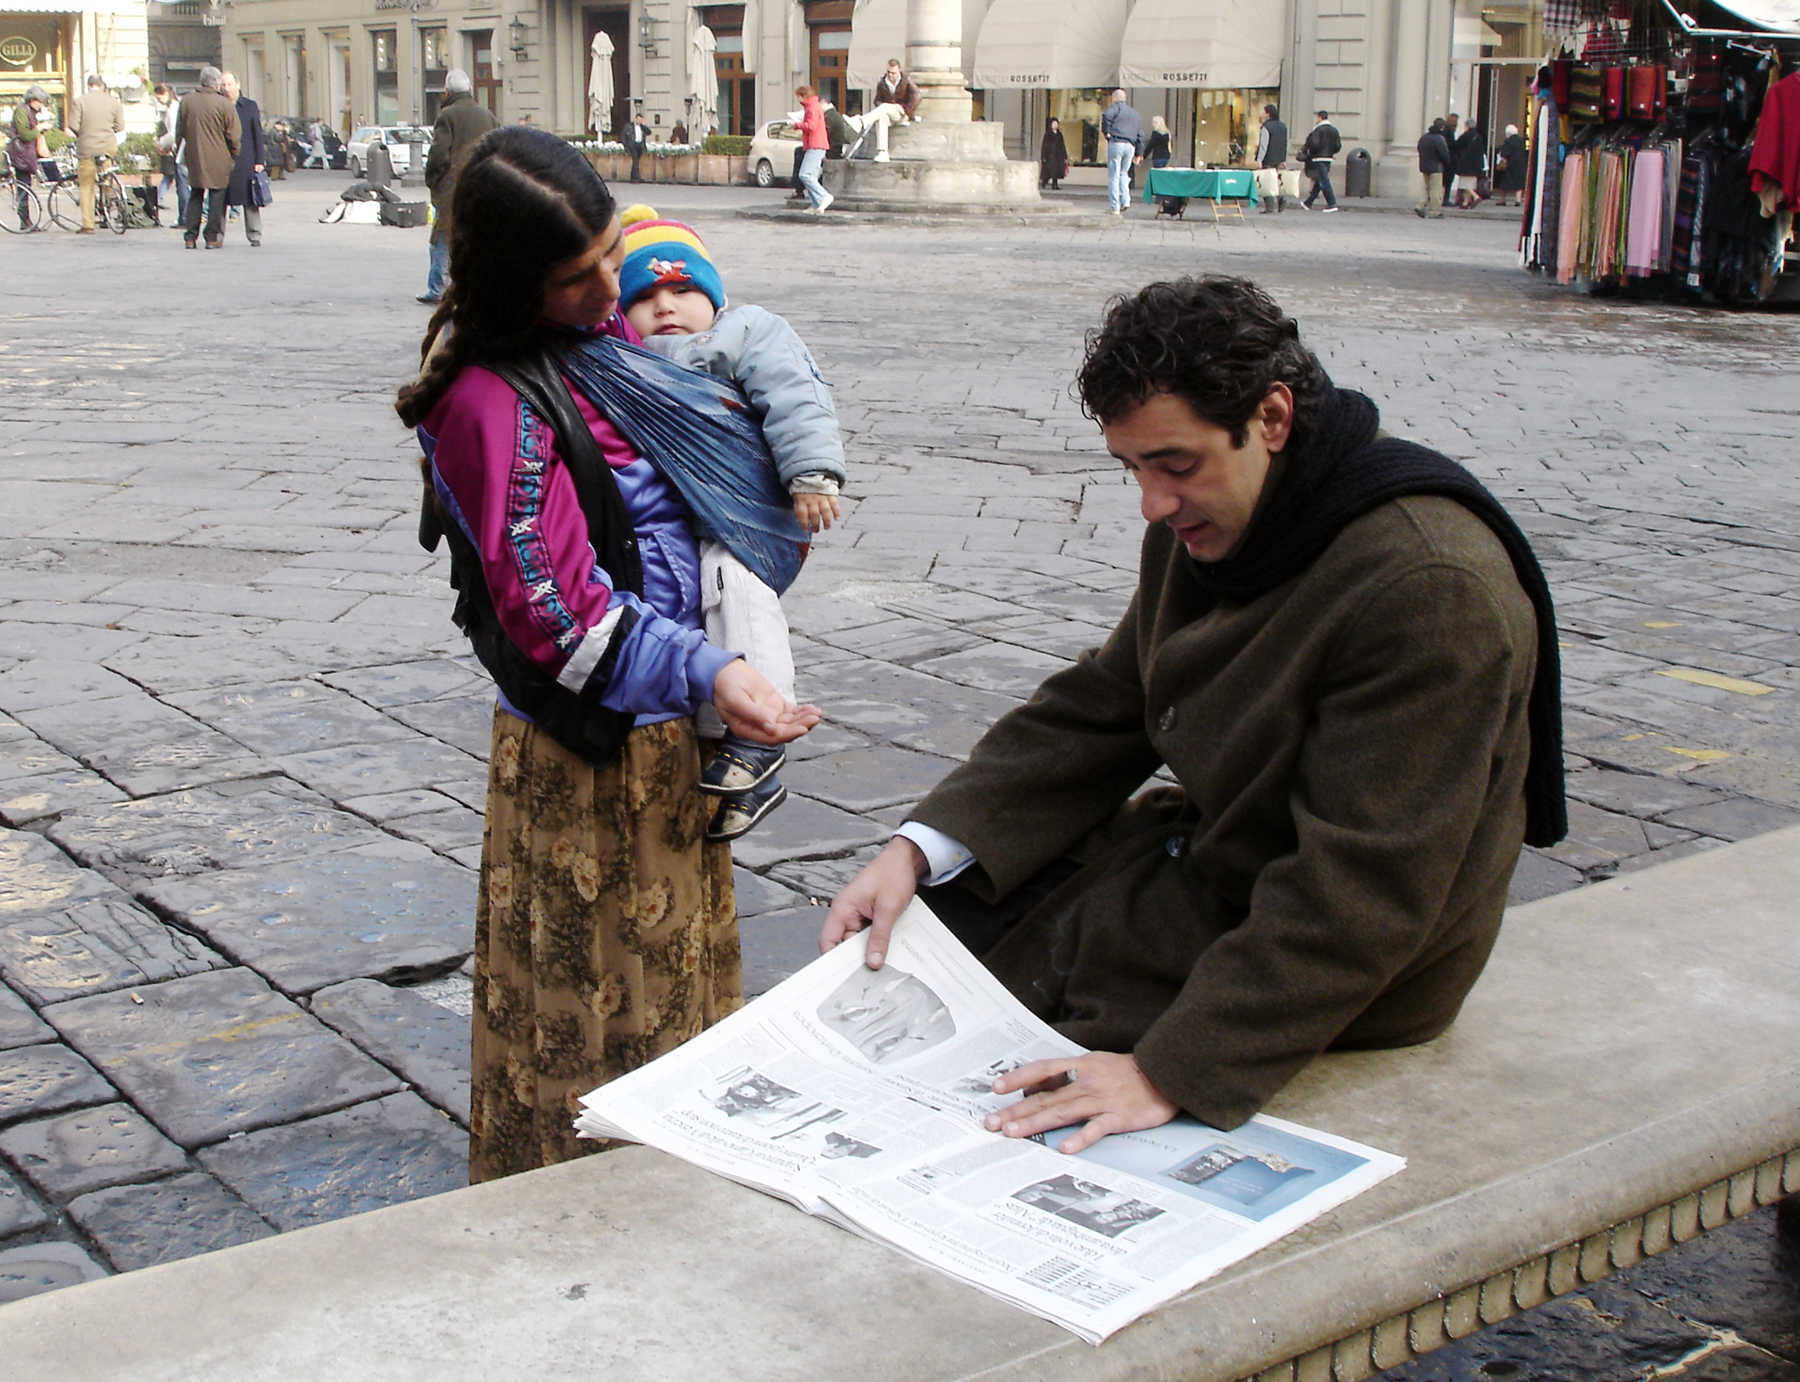 Woman Begging, Florence, Italy